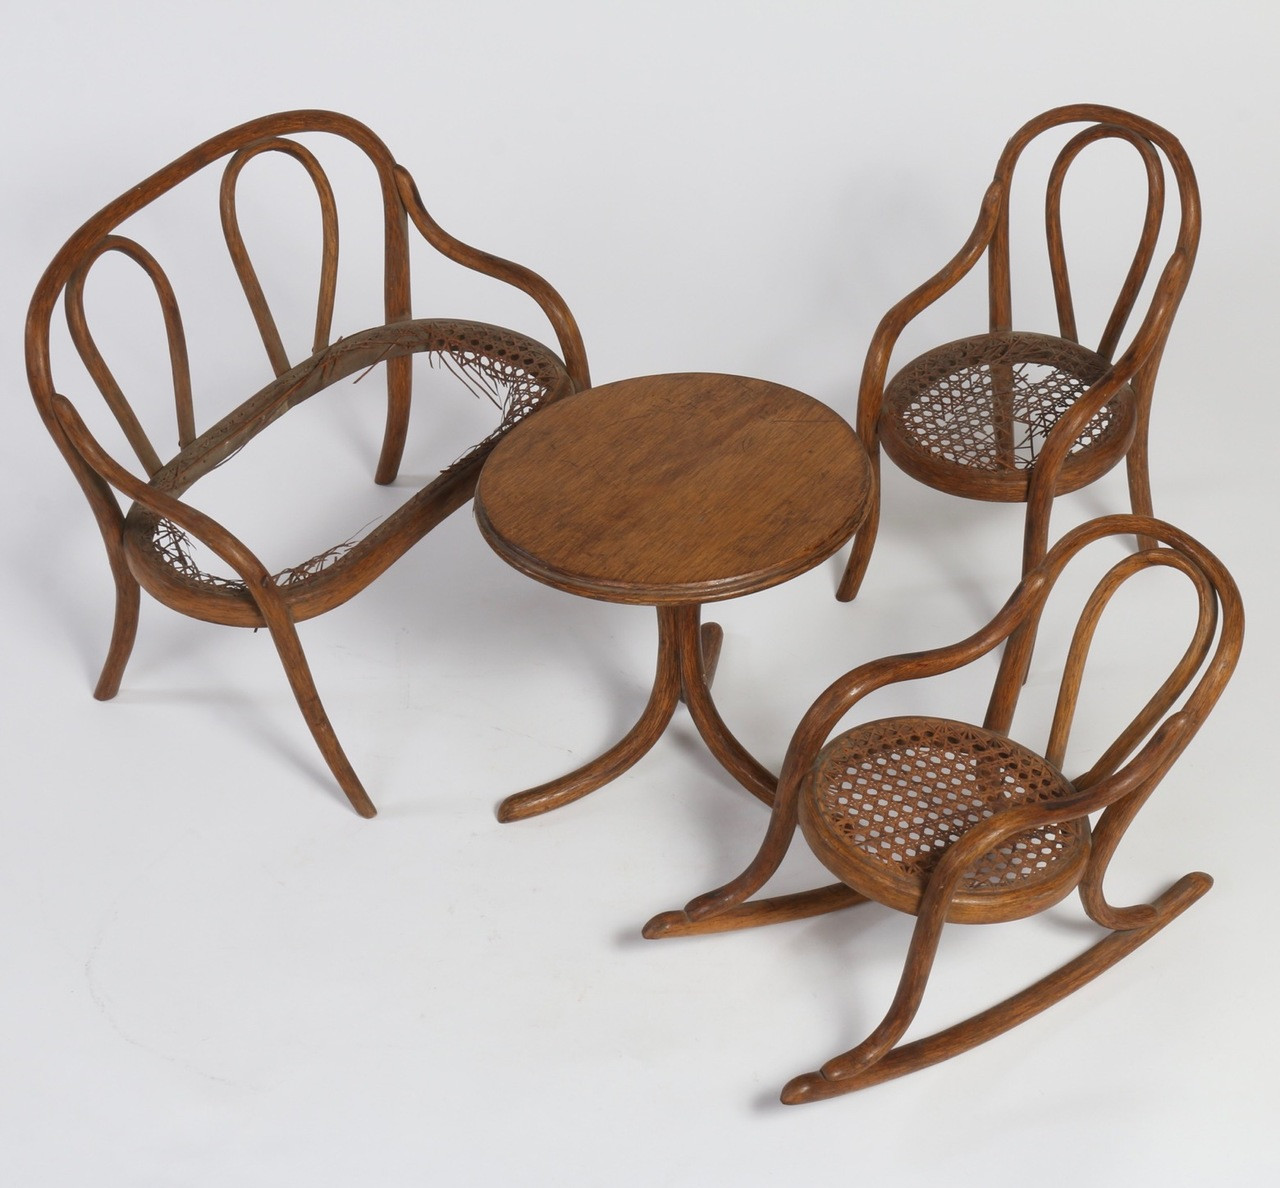 Ordinaire Thonet Bentwood Furniture, Salesman Sample Circa 1860